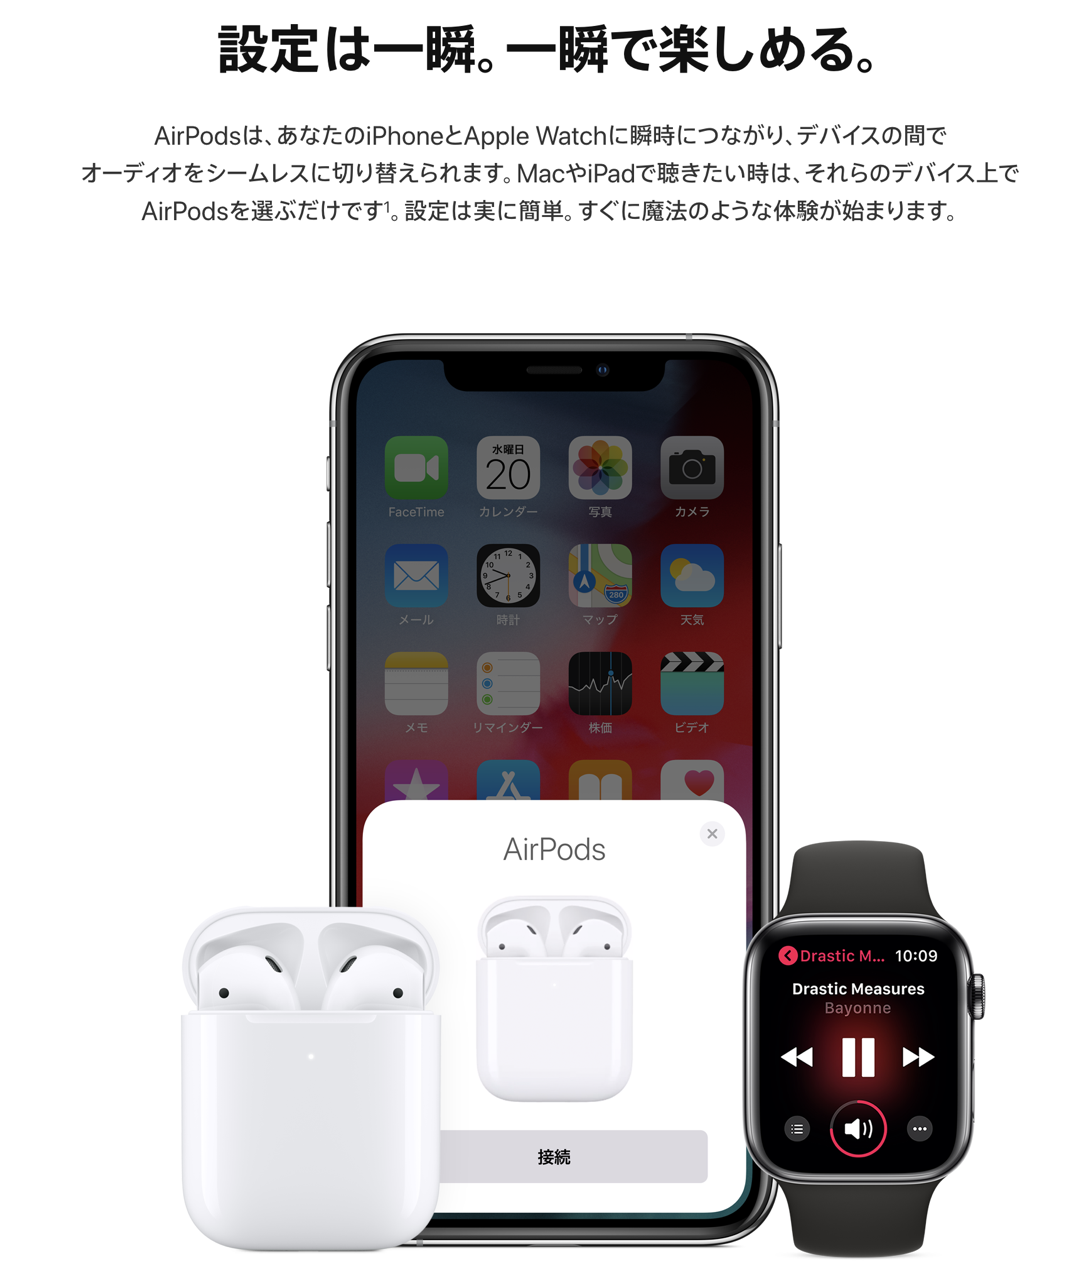 AirPods すぐ繋がる